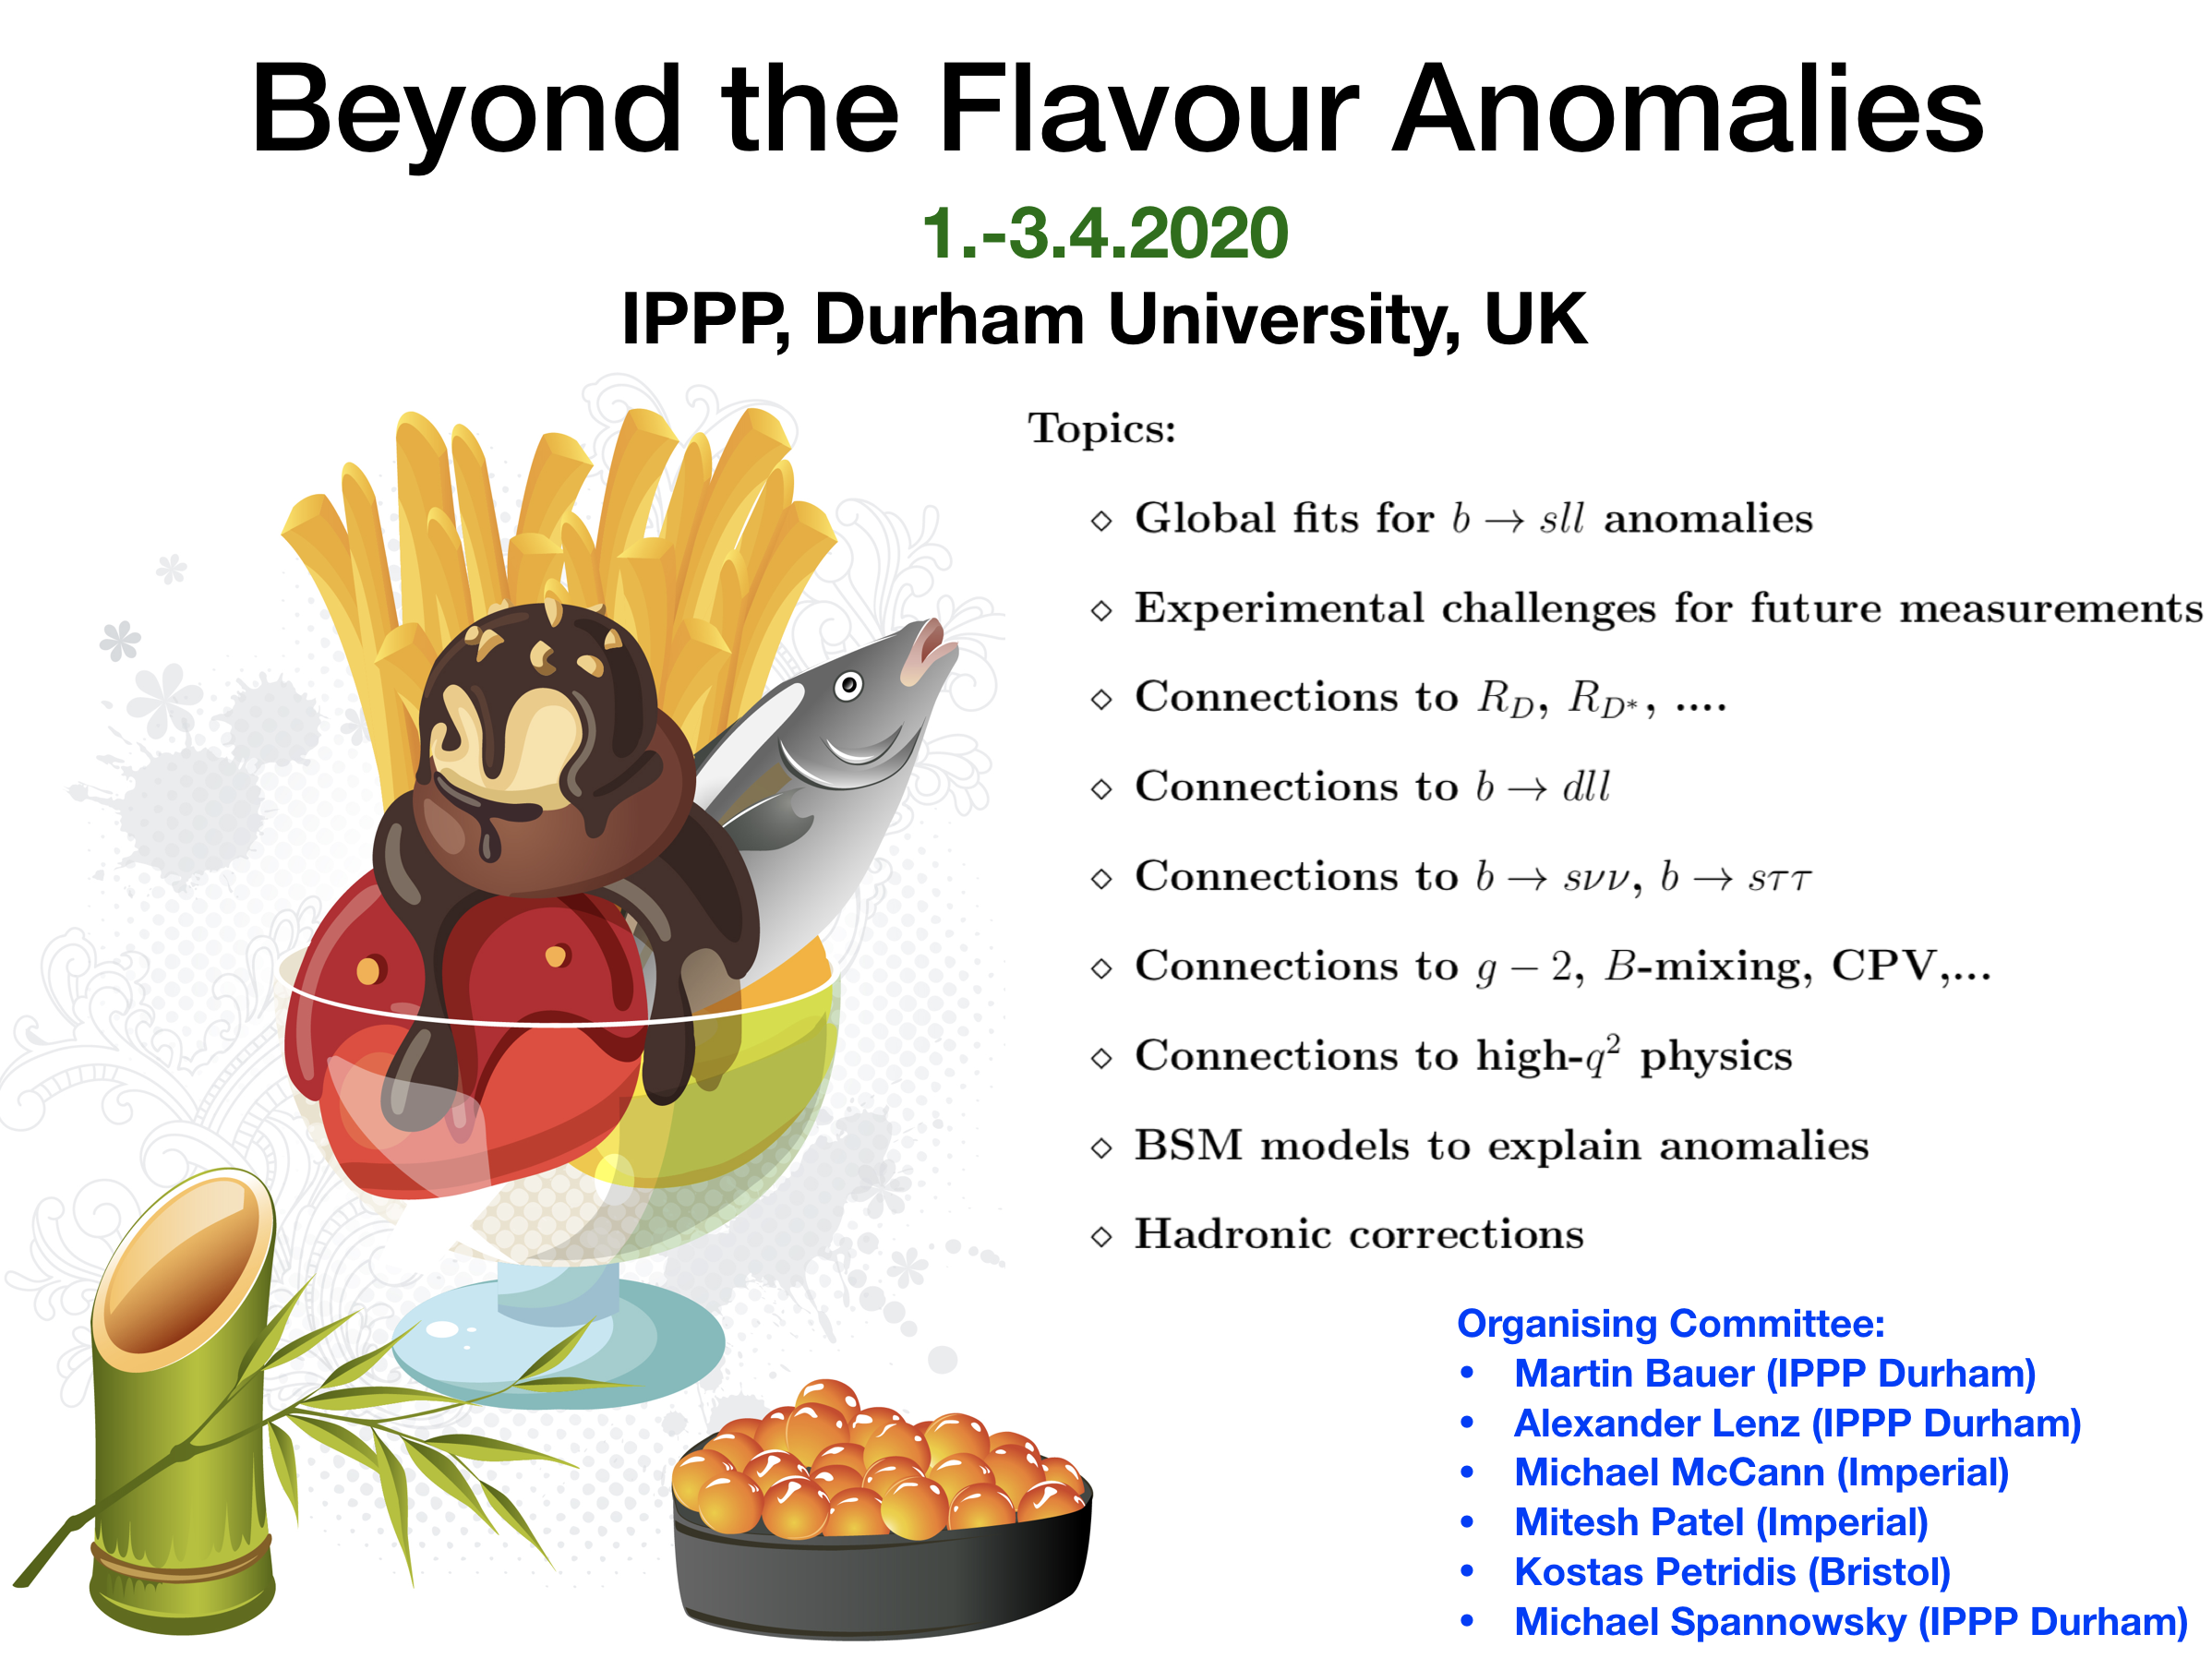 Beyond the Flavour Anomalies